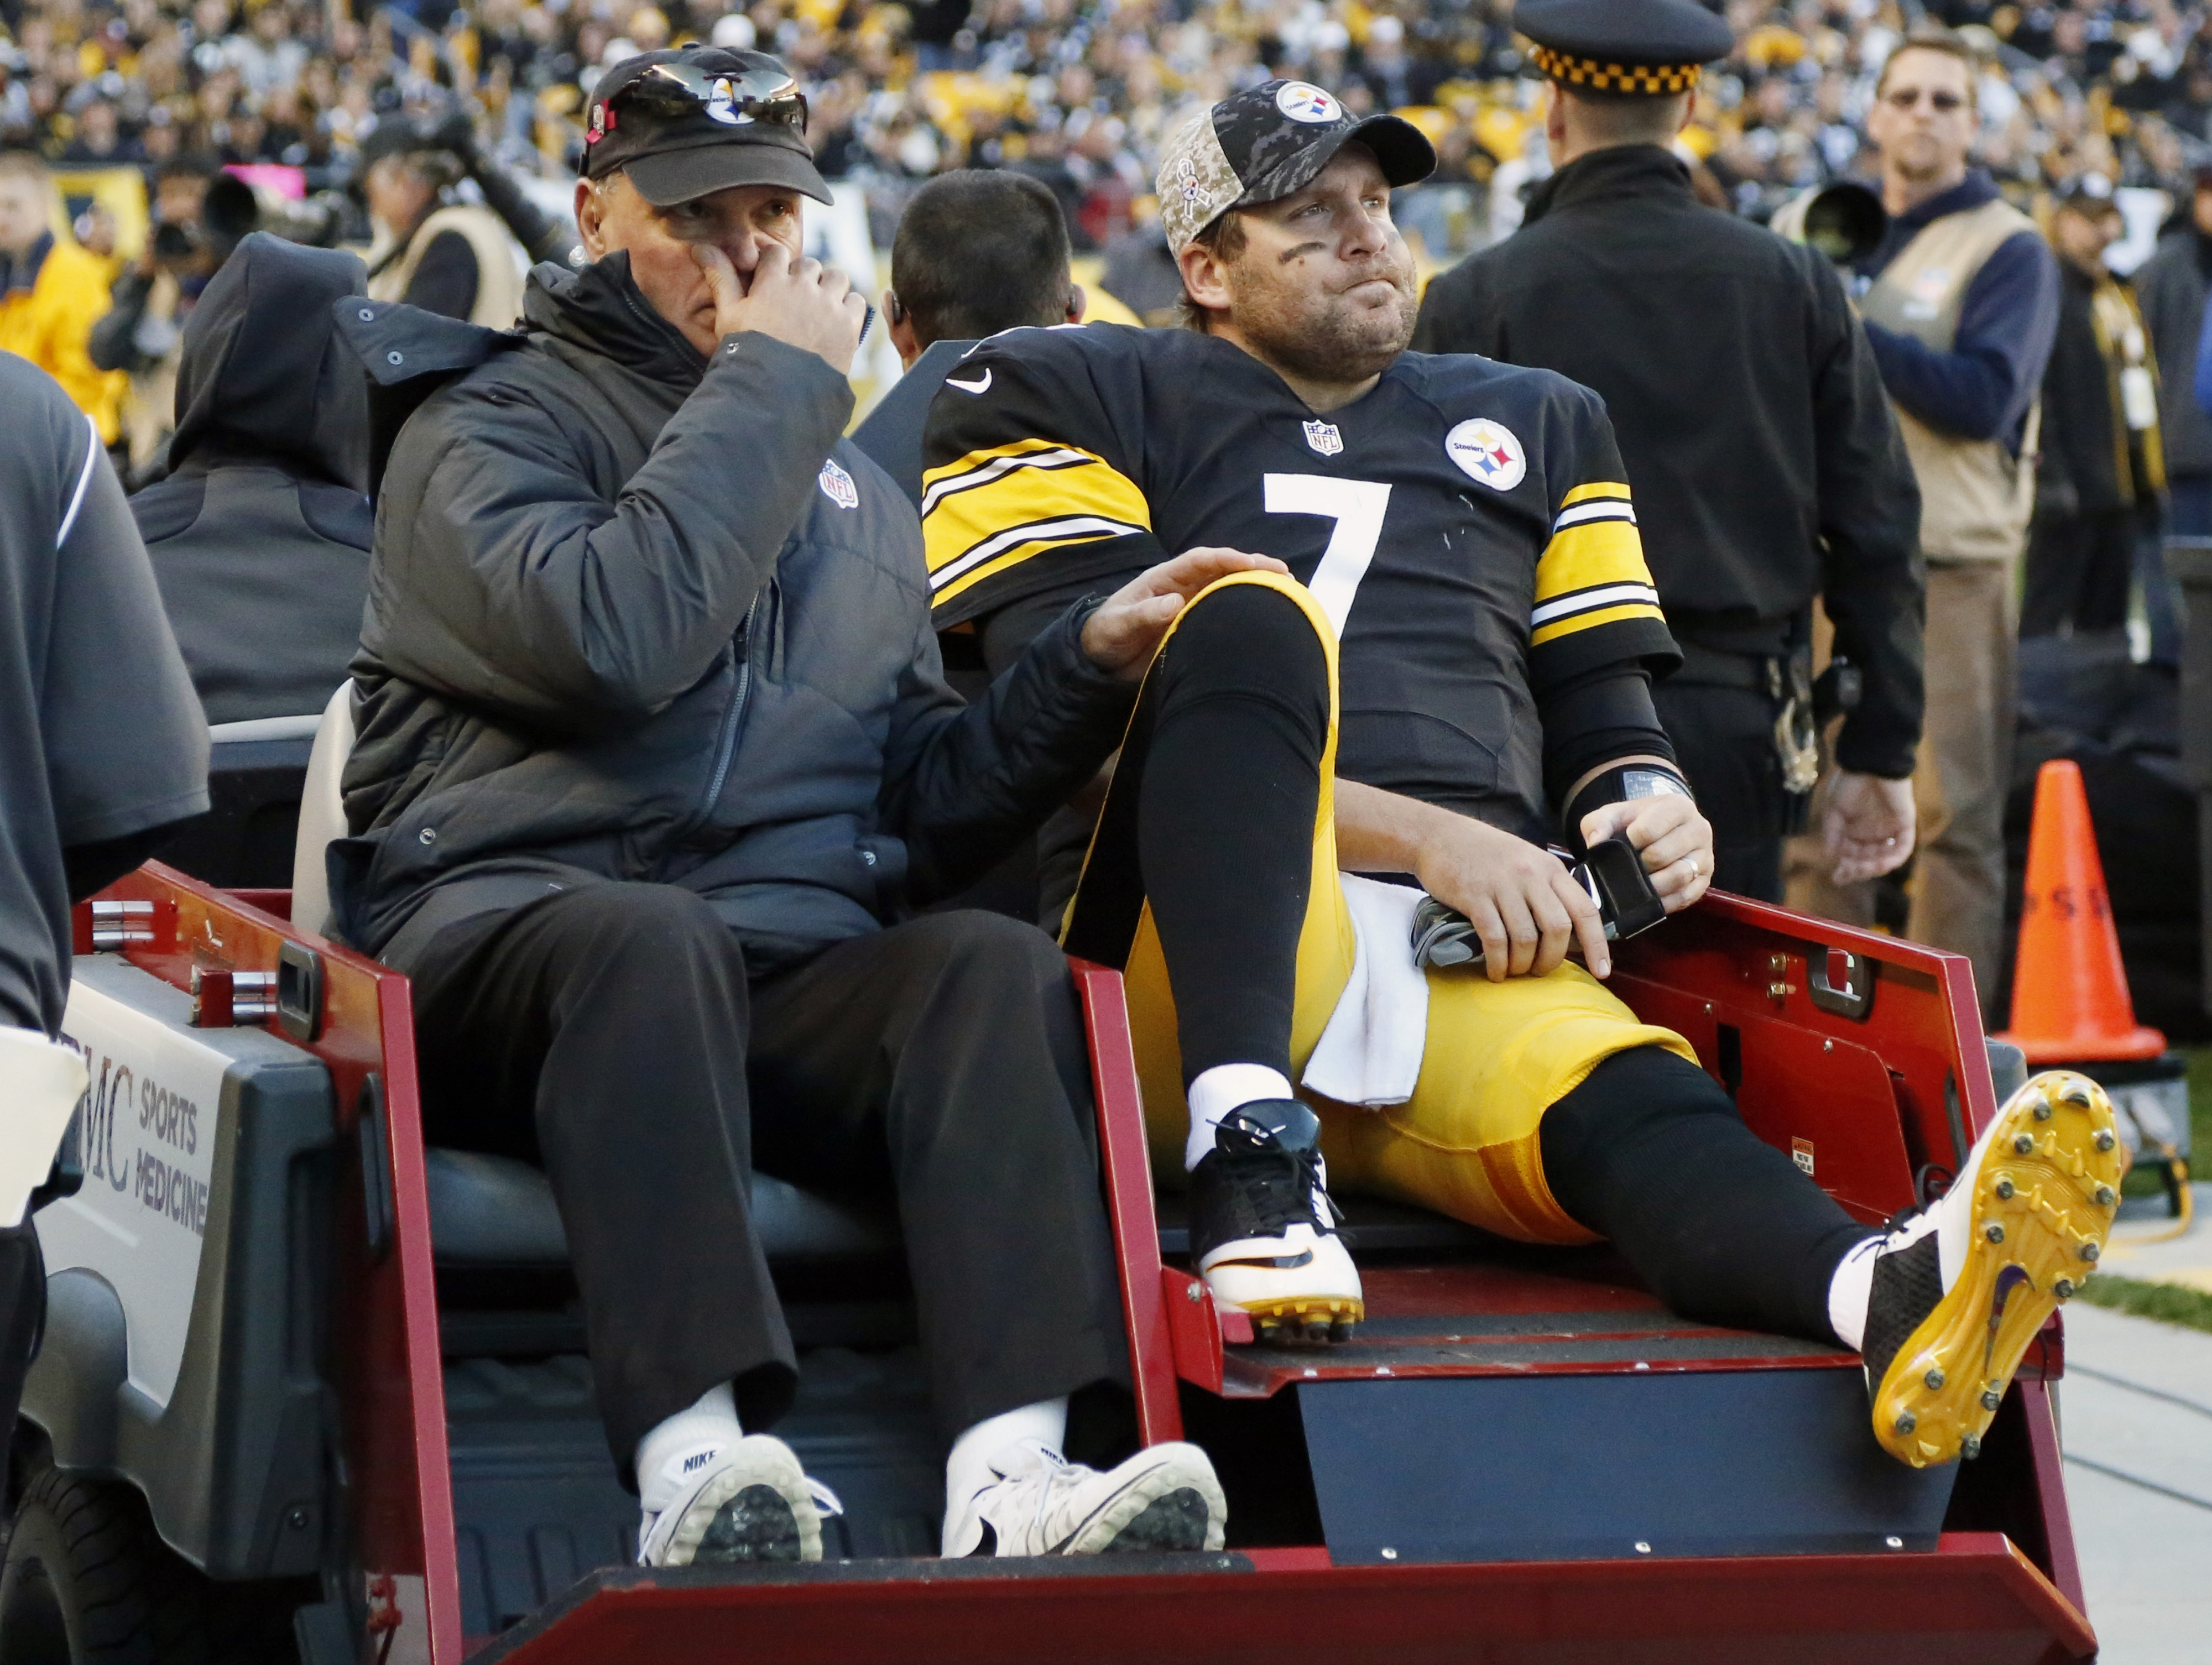 Pittsburgh Steelers quarterback Ben Roethlisberger (7) is taken a way in a cart after he was injured in the fourth quarter of an NFL football game against the Oakland Raiders, Sunday, Nov. 8, 2015, in Pittsburgh. The Steelers won 38-35. (AP Photo/Gene Pus